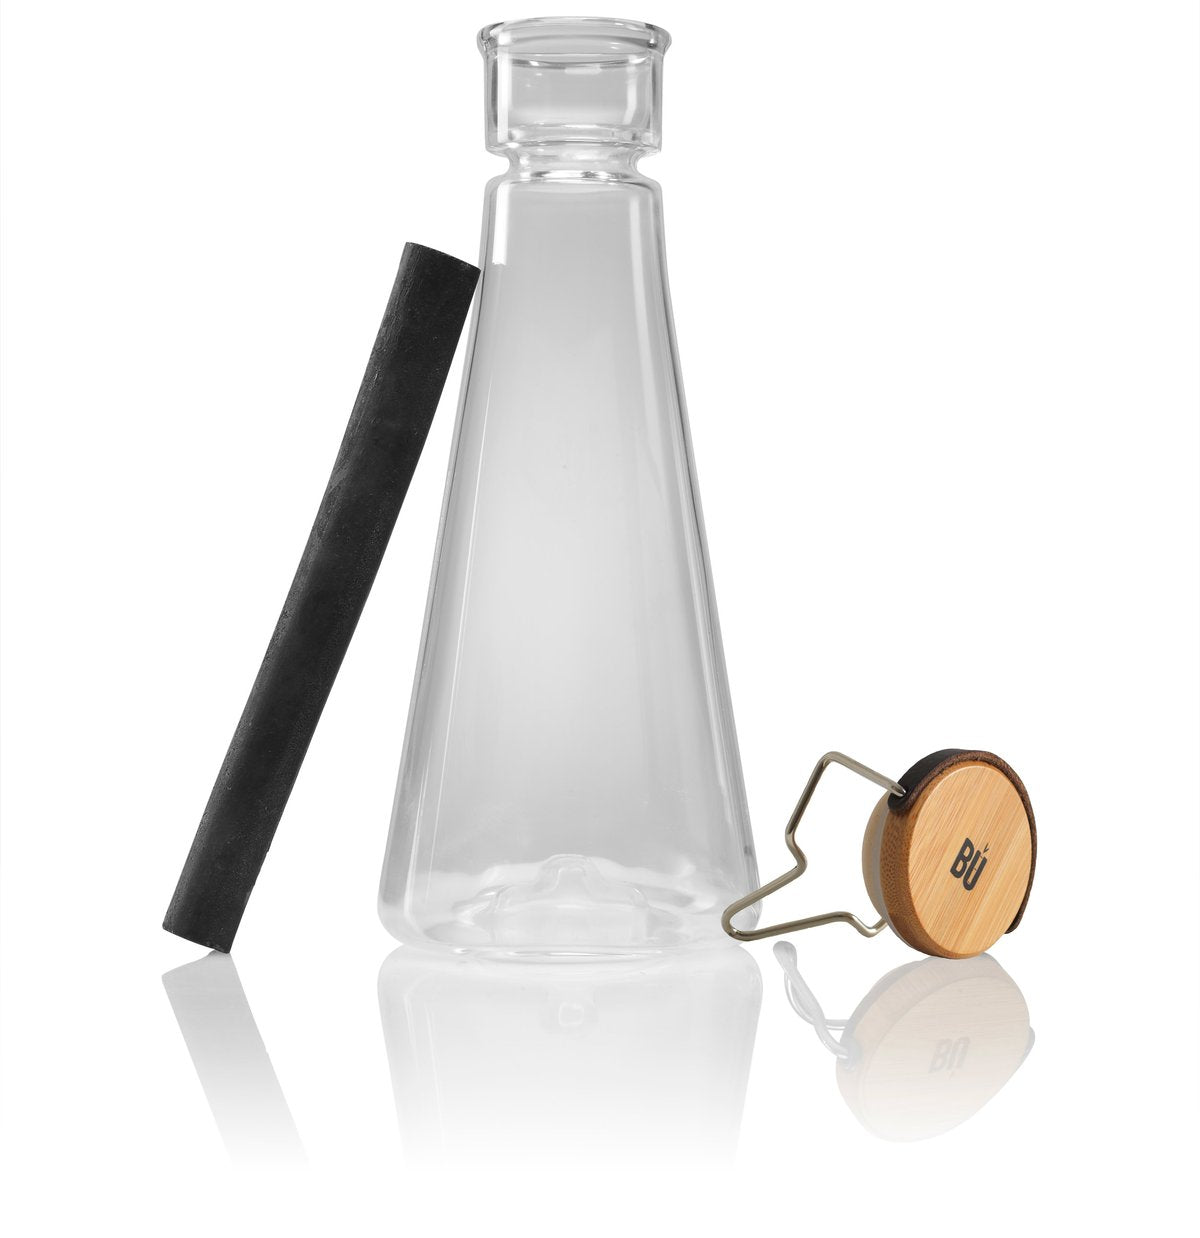 The bamboo filtered water bottle